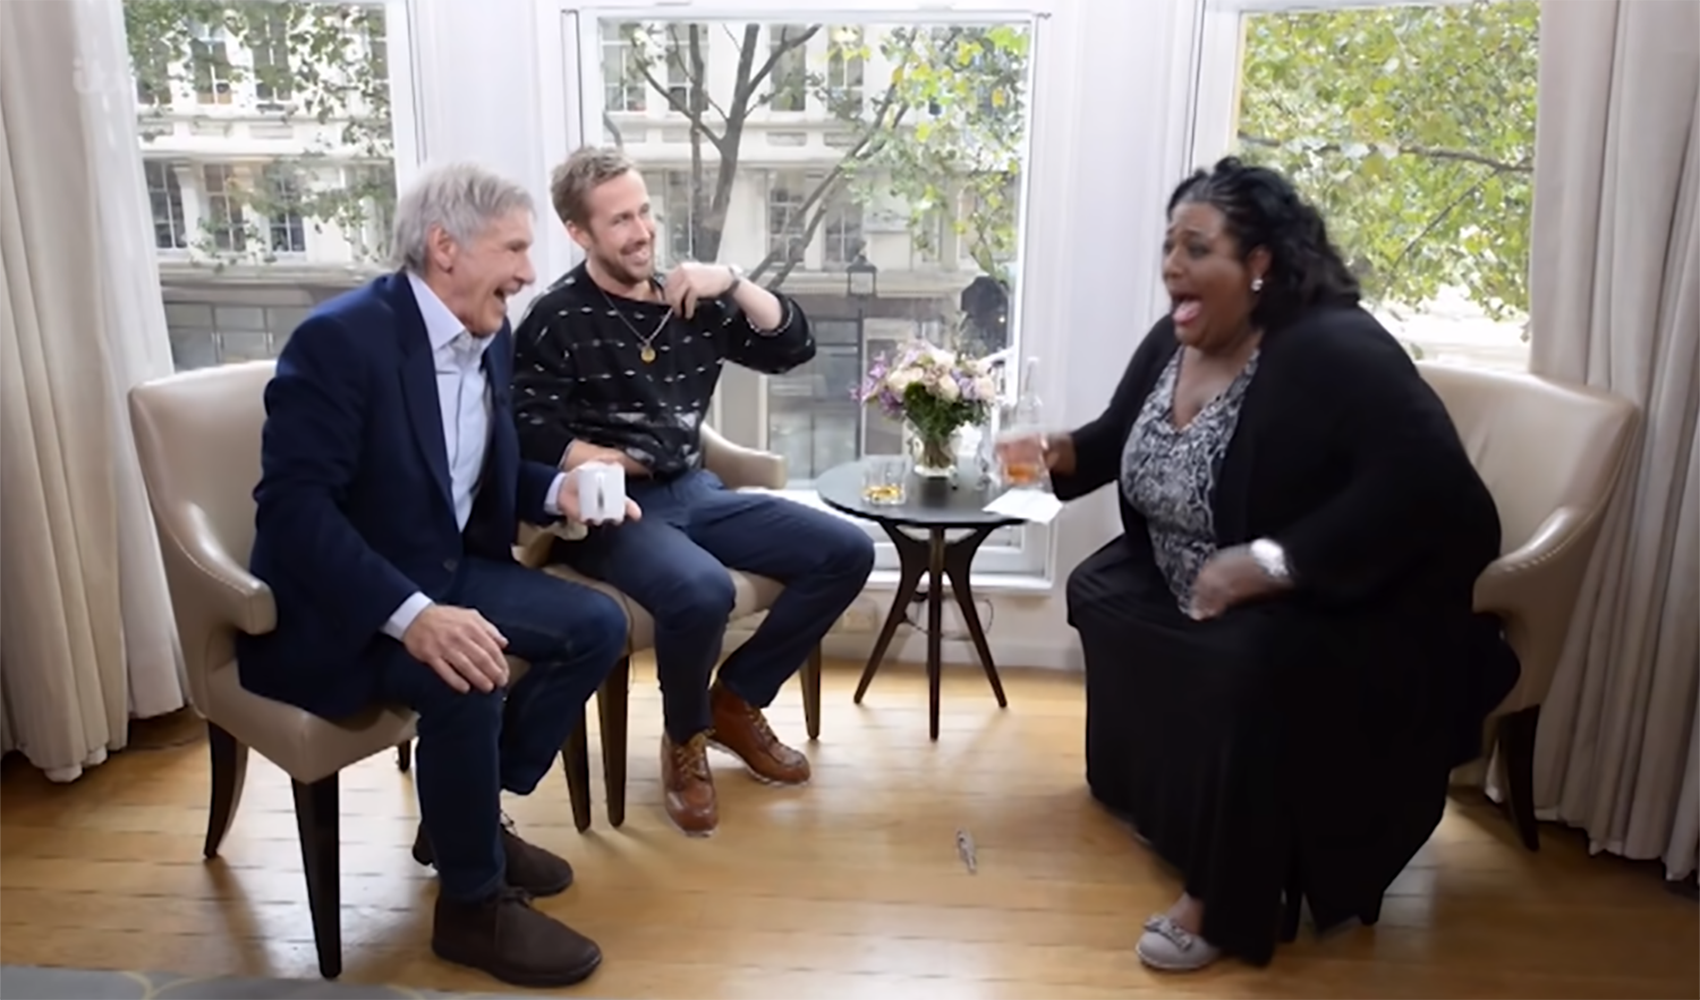 This Morning replays Alison Hammond's hilarious Harrison Ford and Ryan Gosling interview